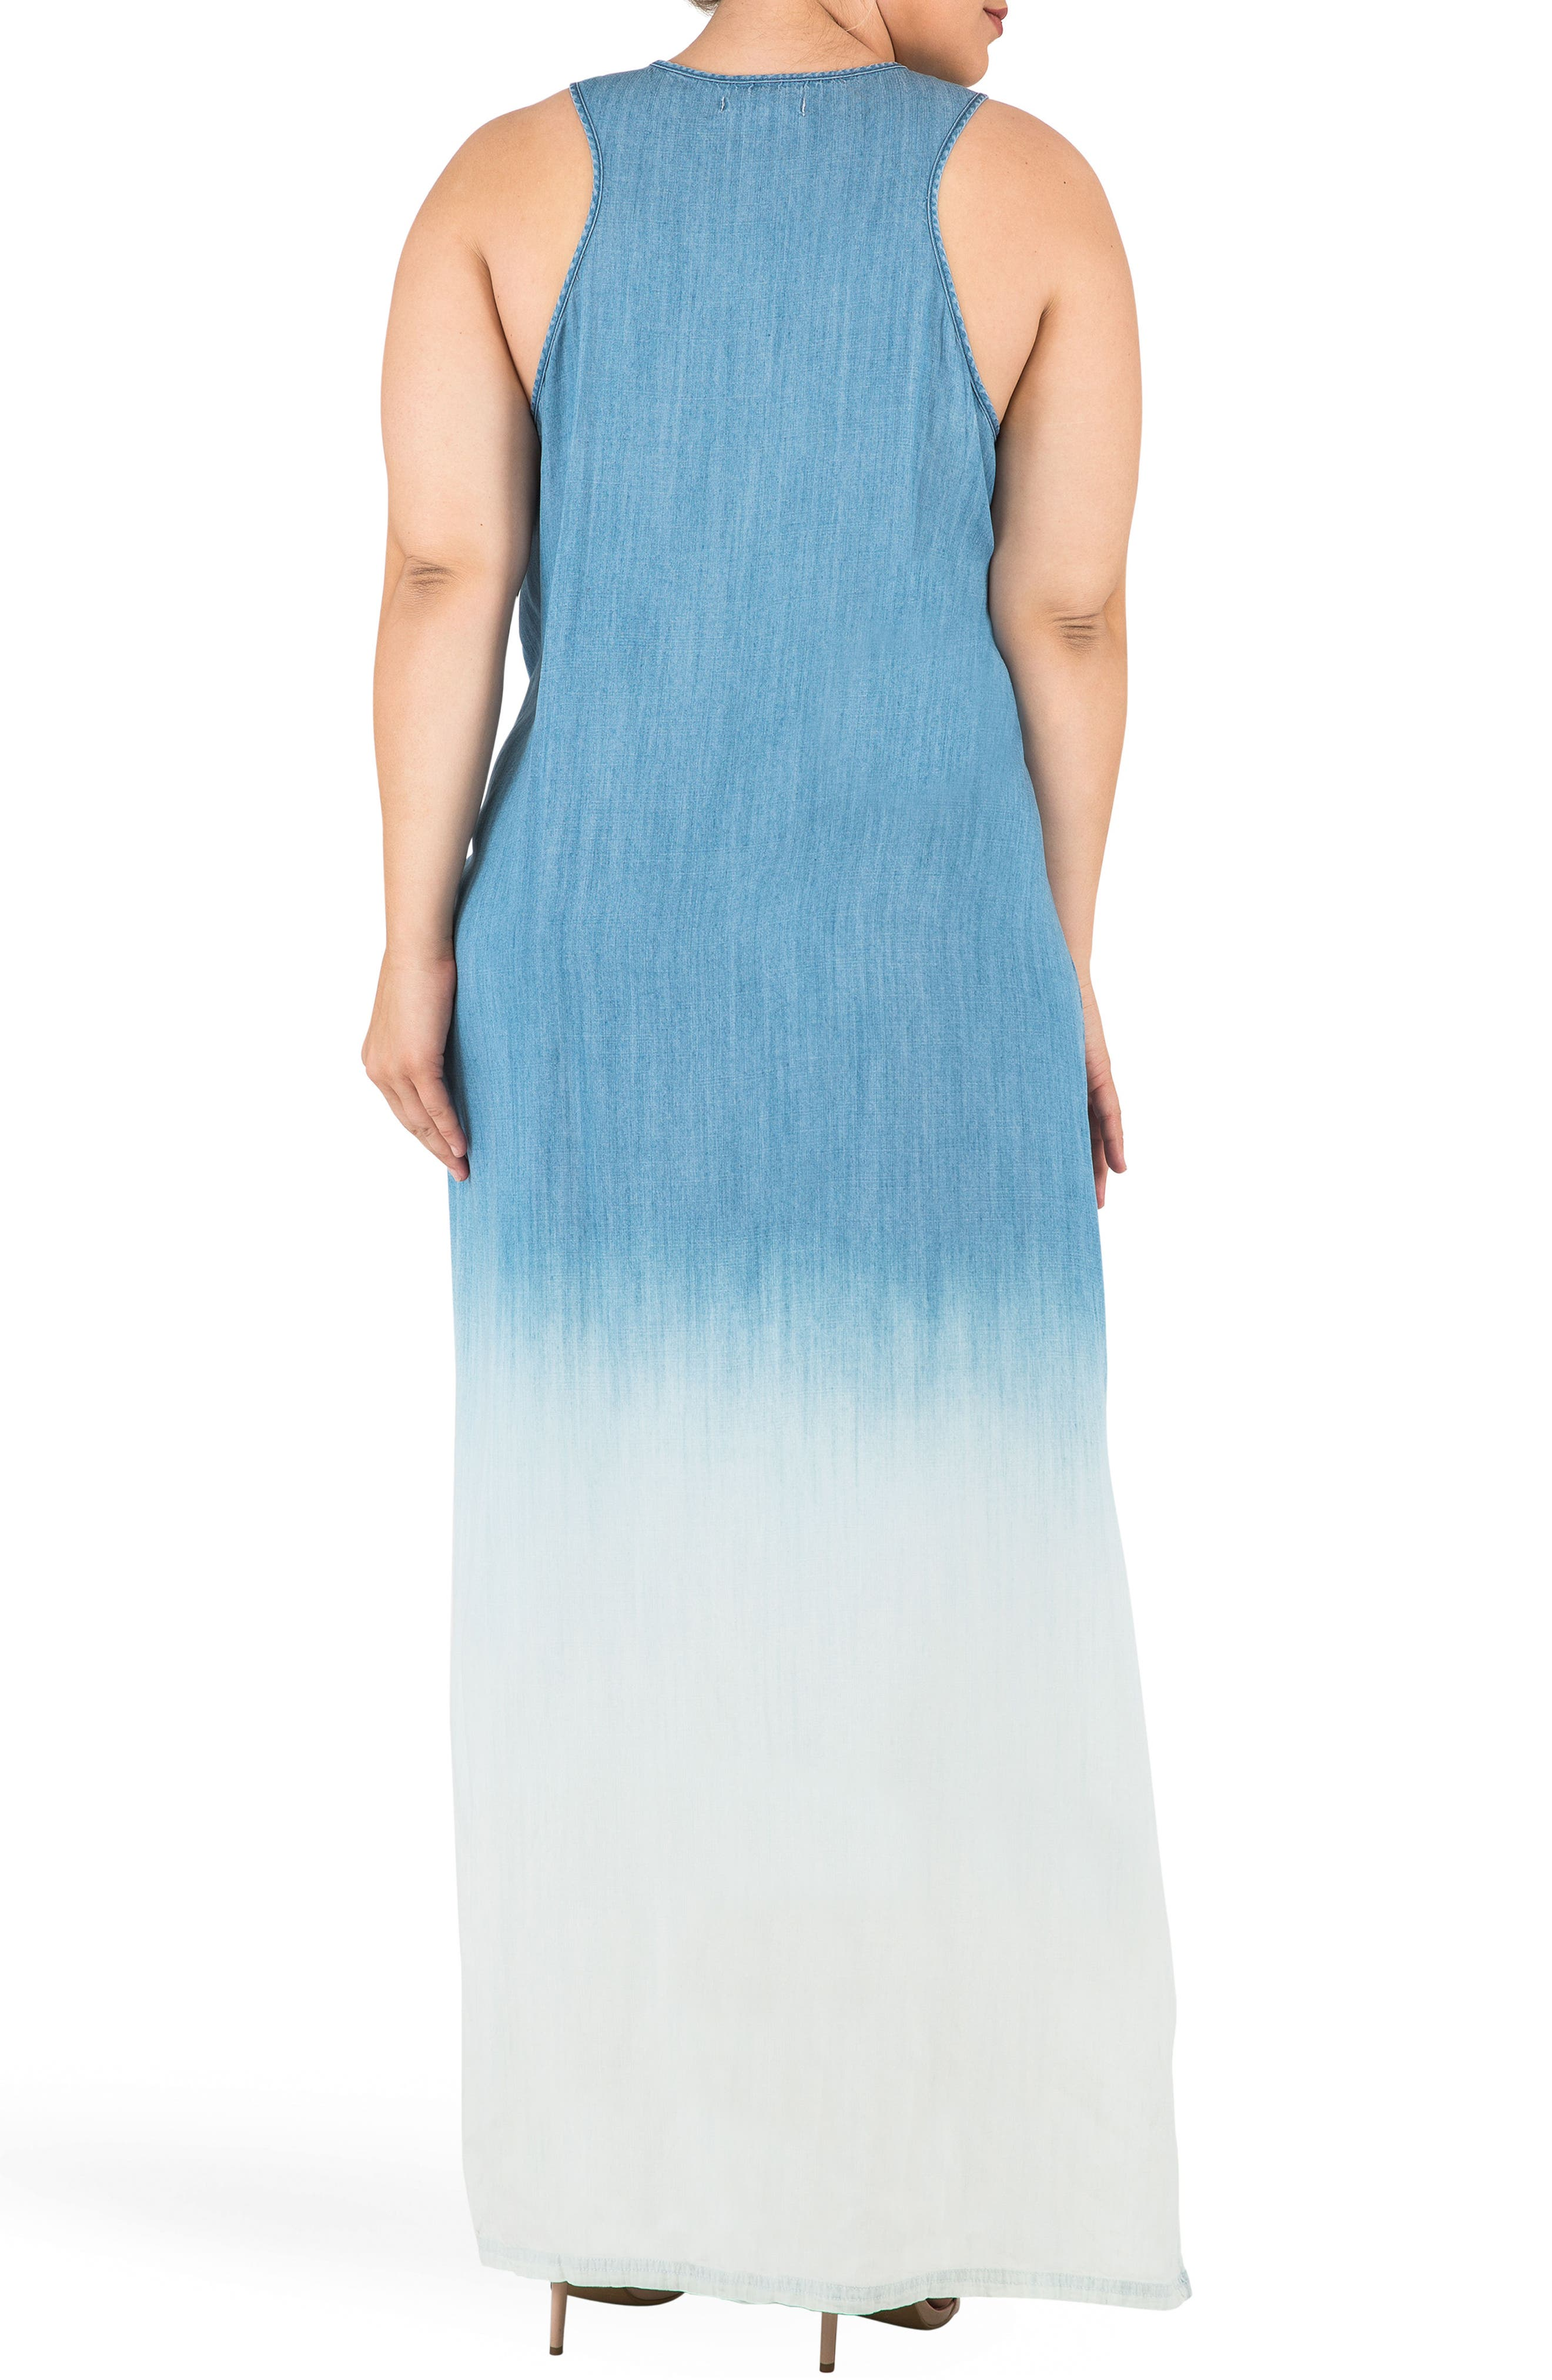 Angie Ombré Chmbray Maxi Dress,                             Alternate thumbnail 2, color,                             BLUE